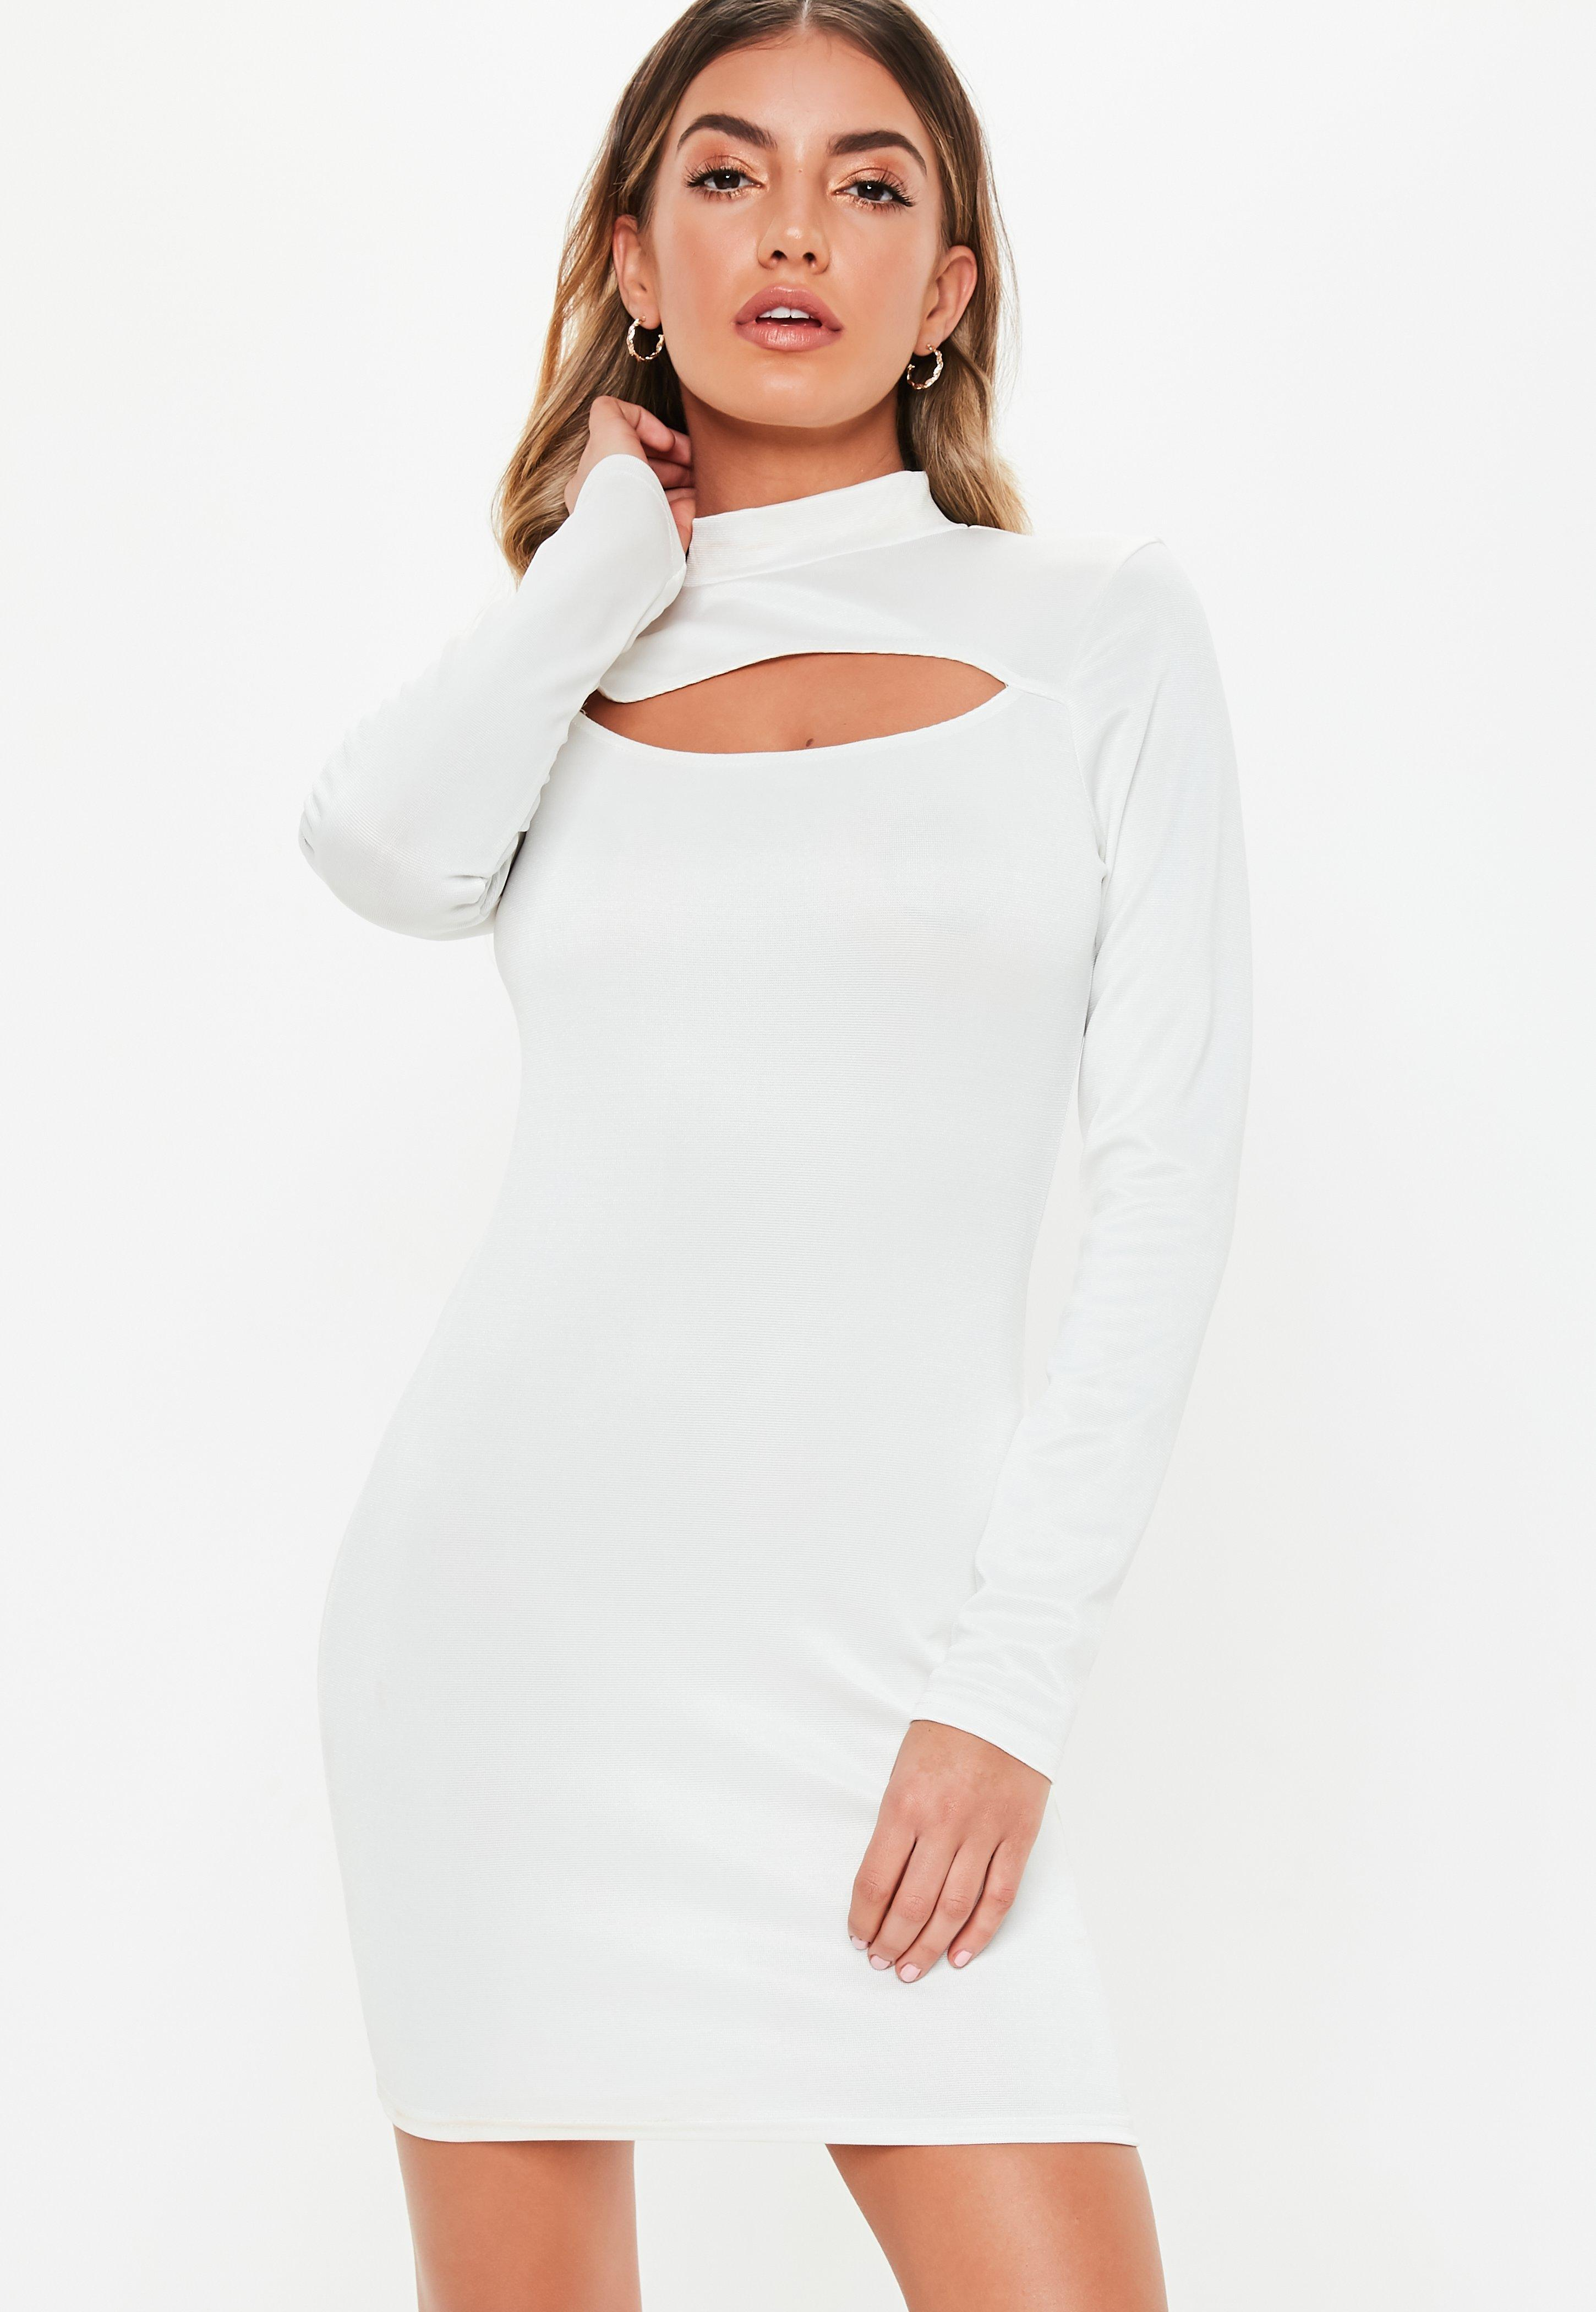 1b4936ebdcf2 Missguided White Bandage Cut Out Bodycon Mini Dress in White - Lyst